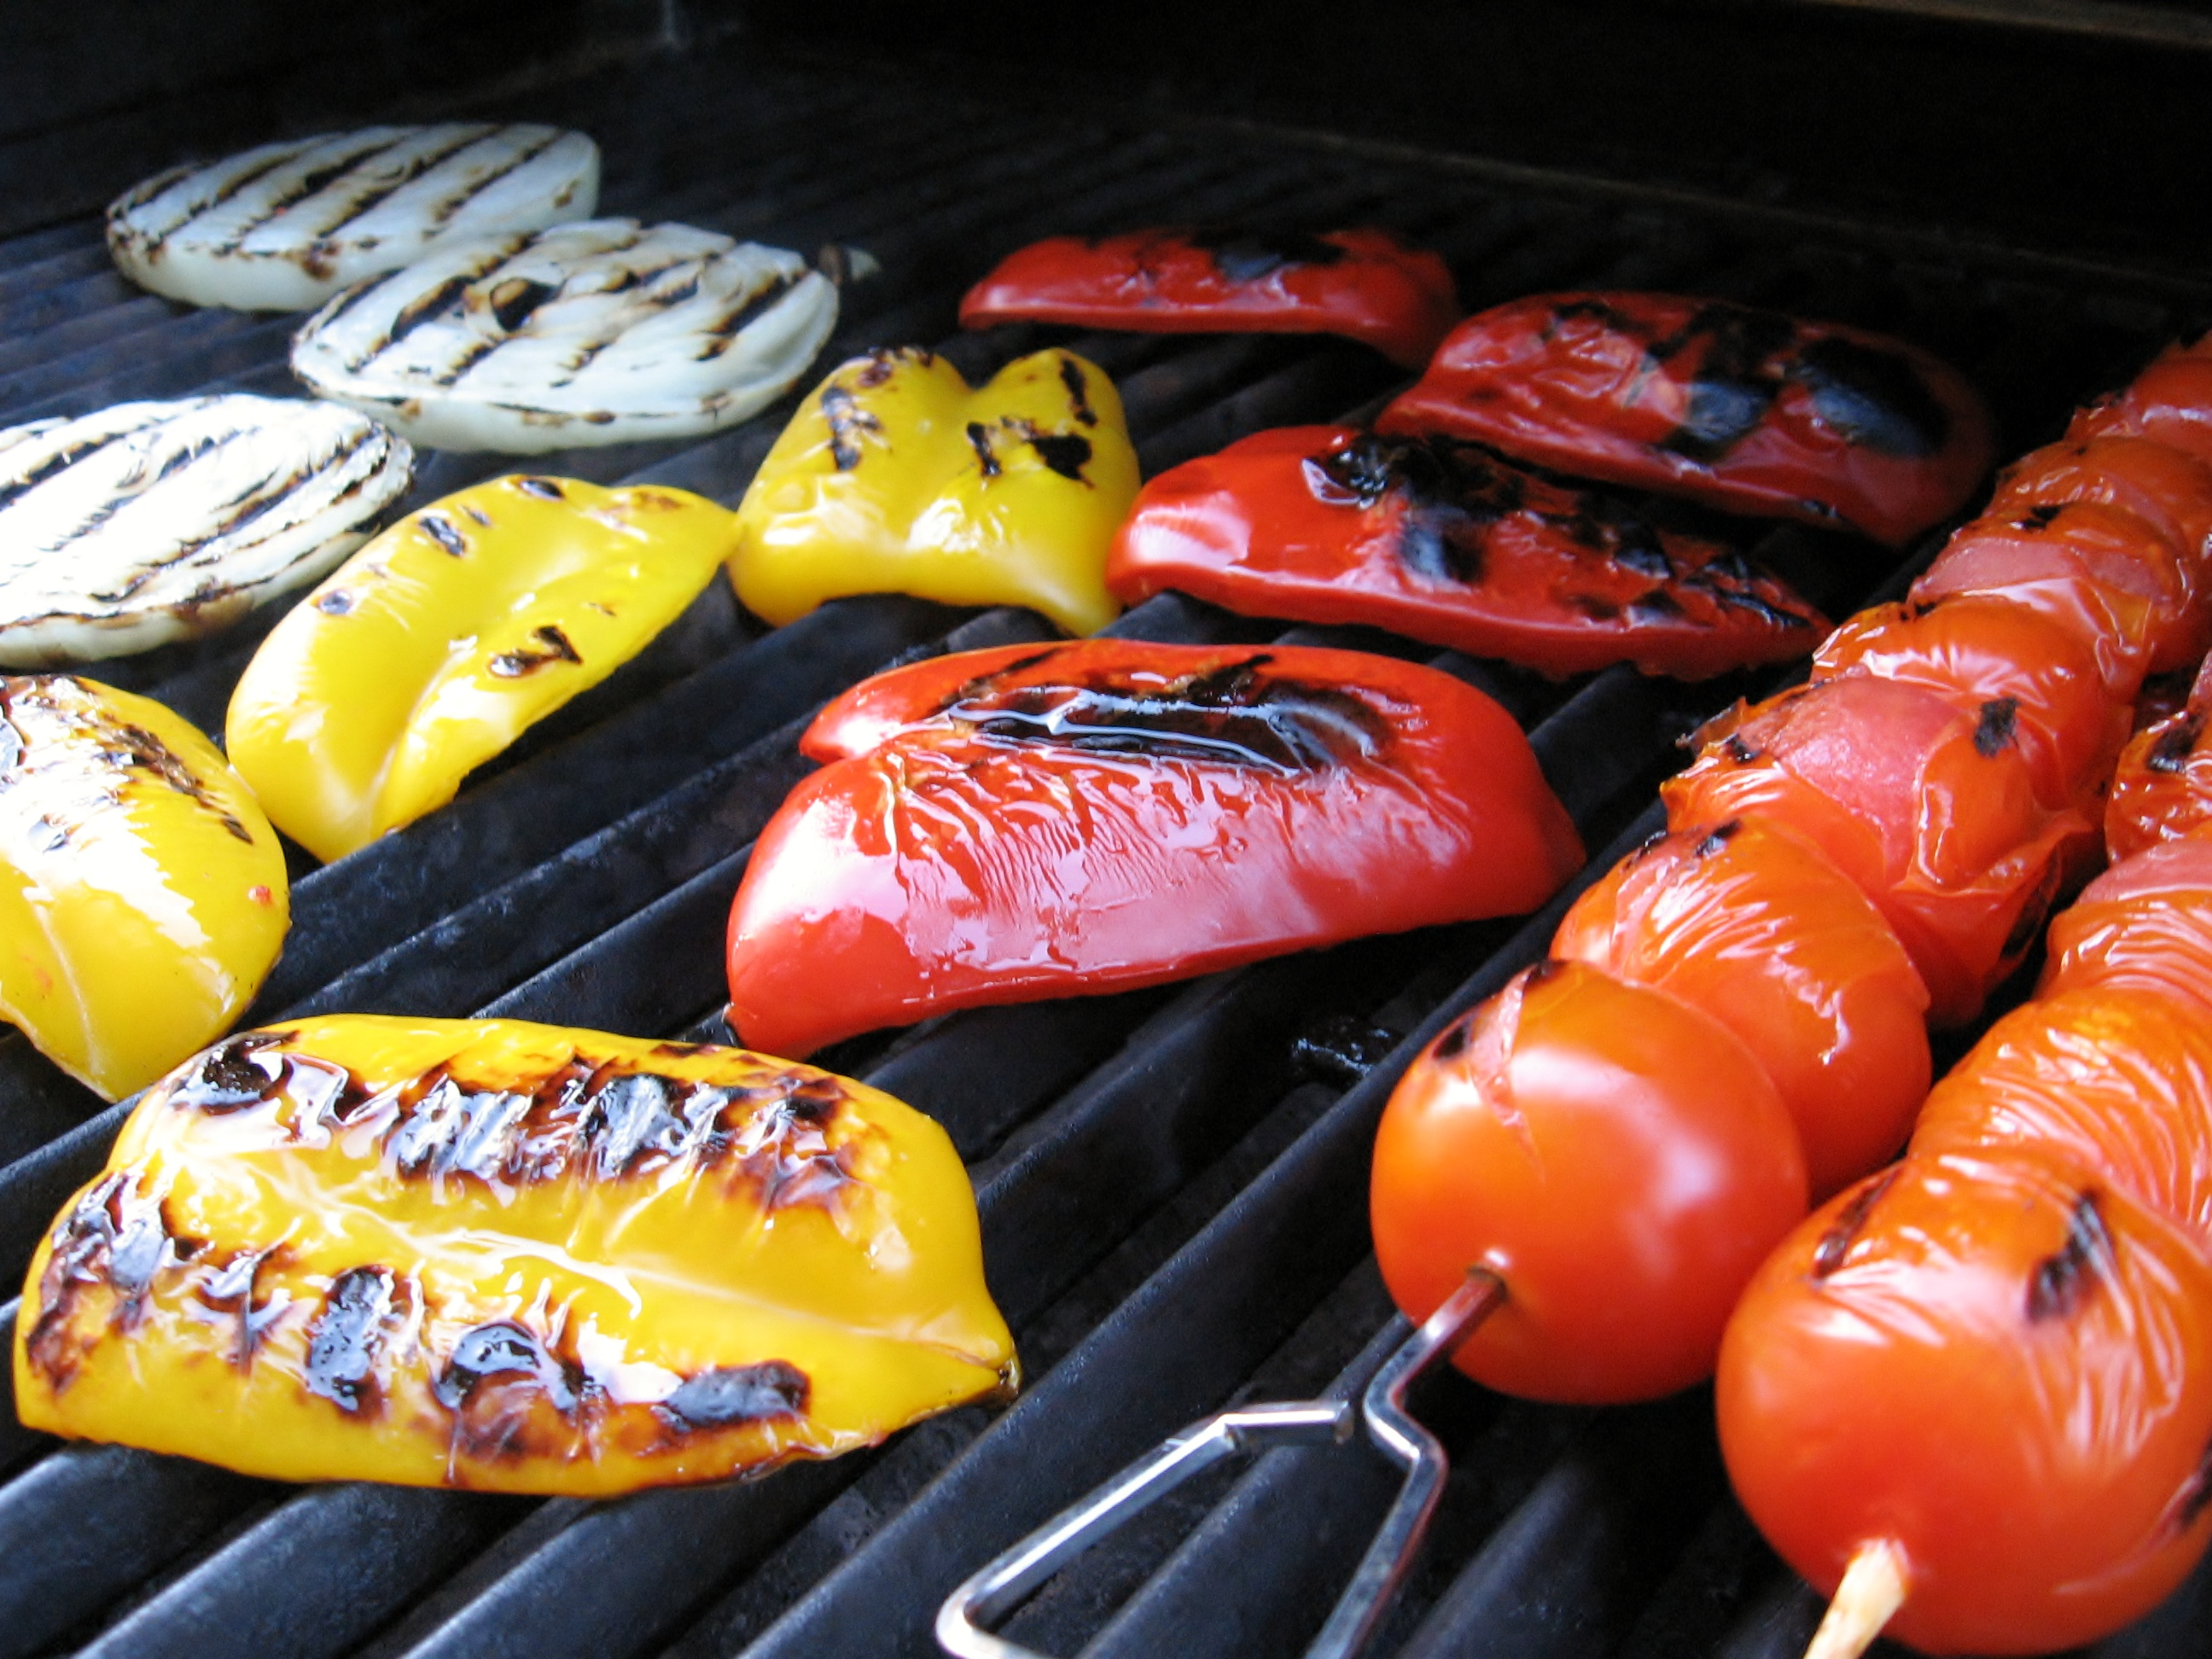 How to Grill Any Vegetable: Tips for a Healthy New Year